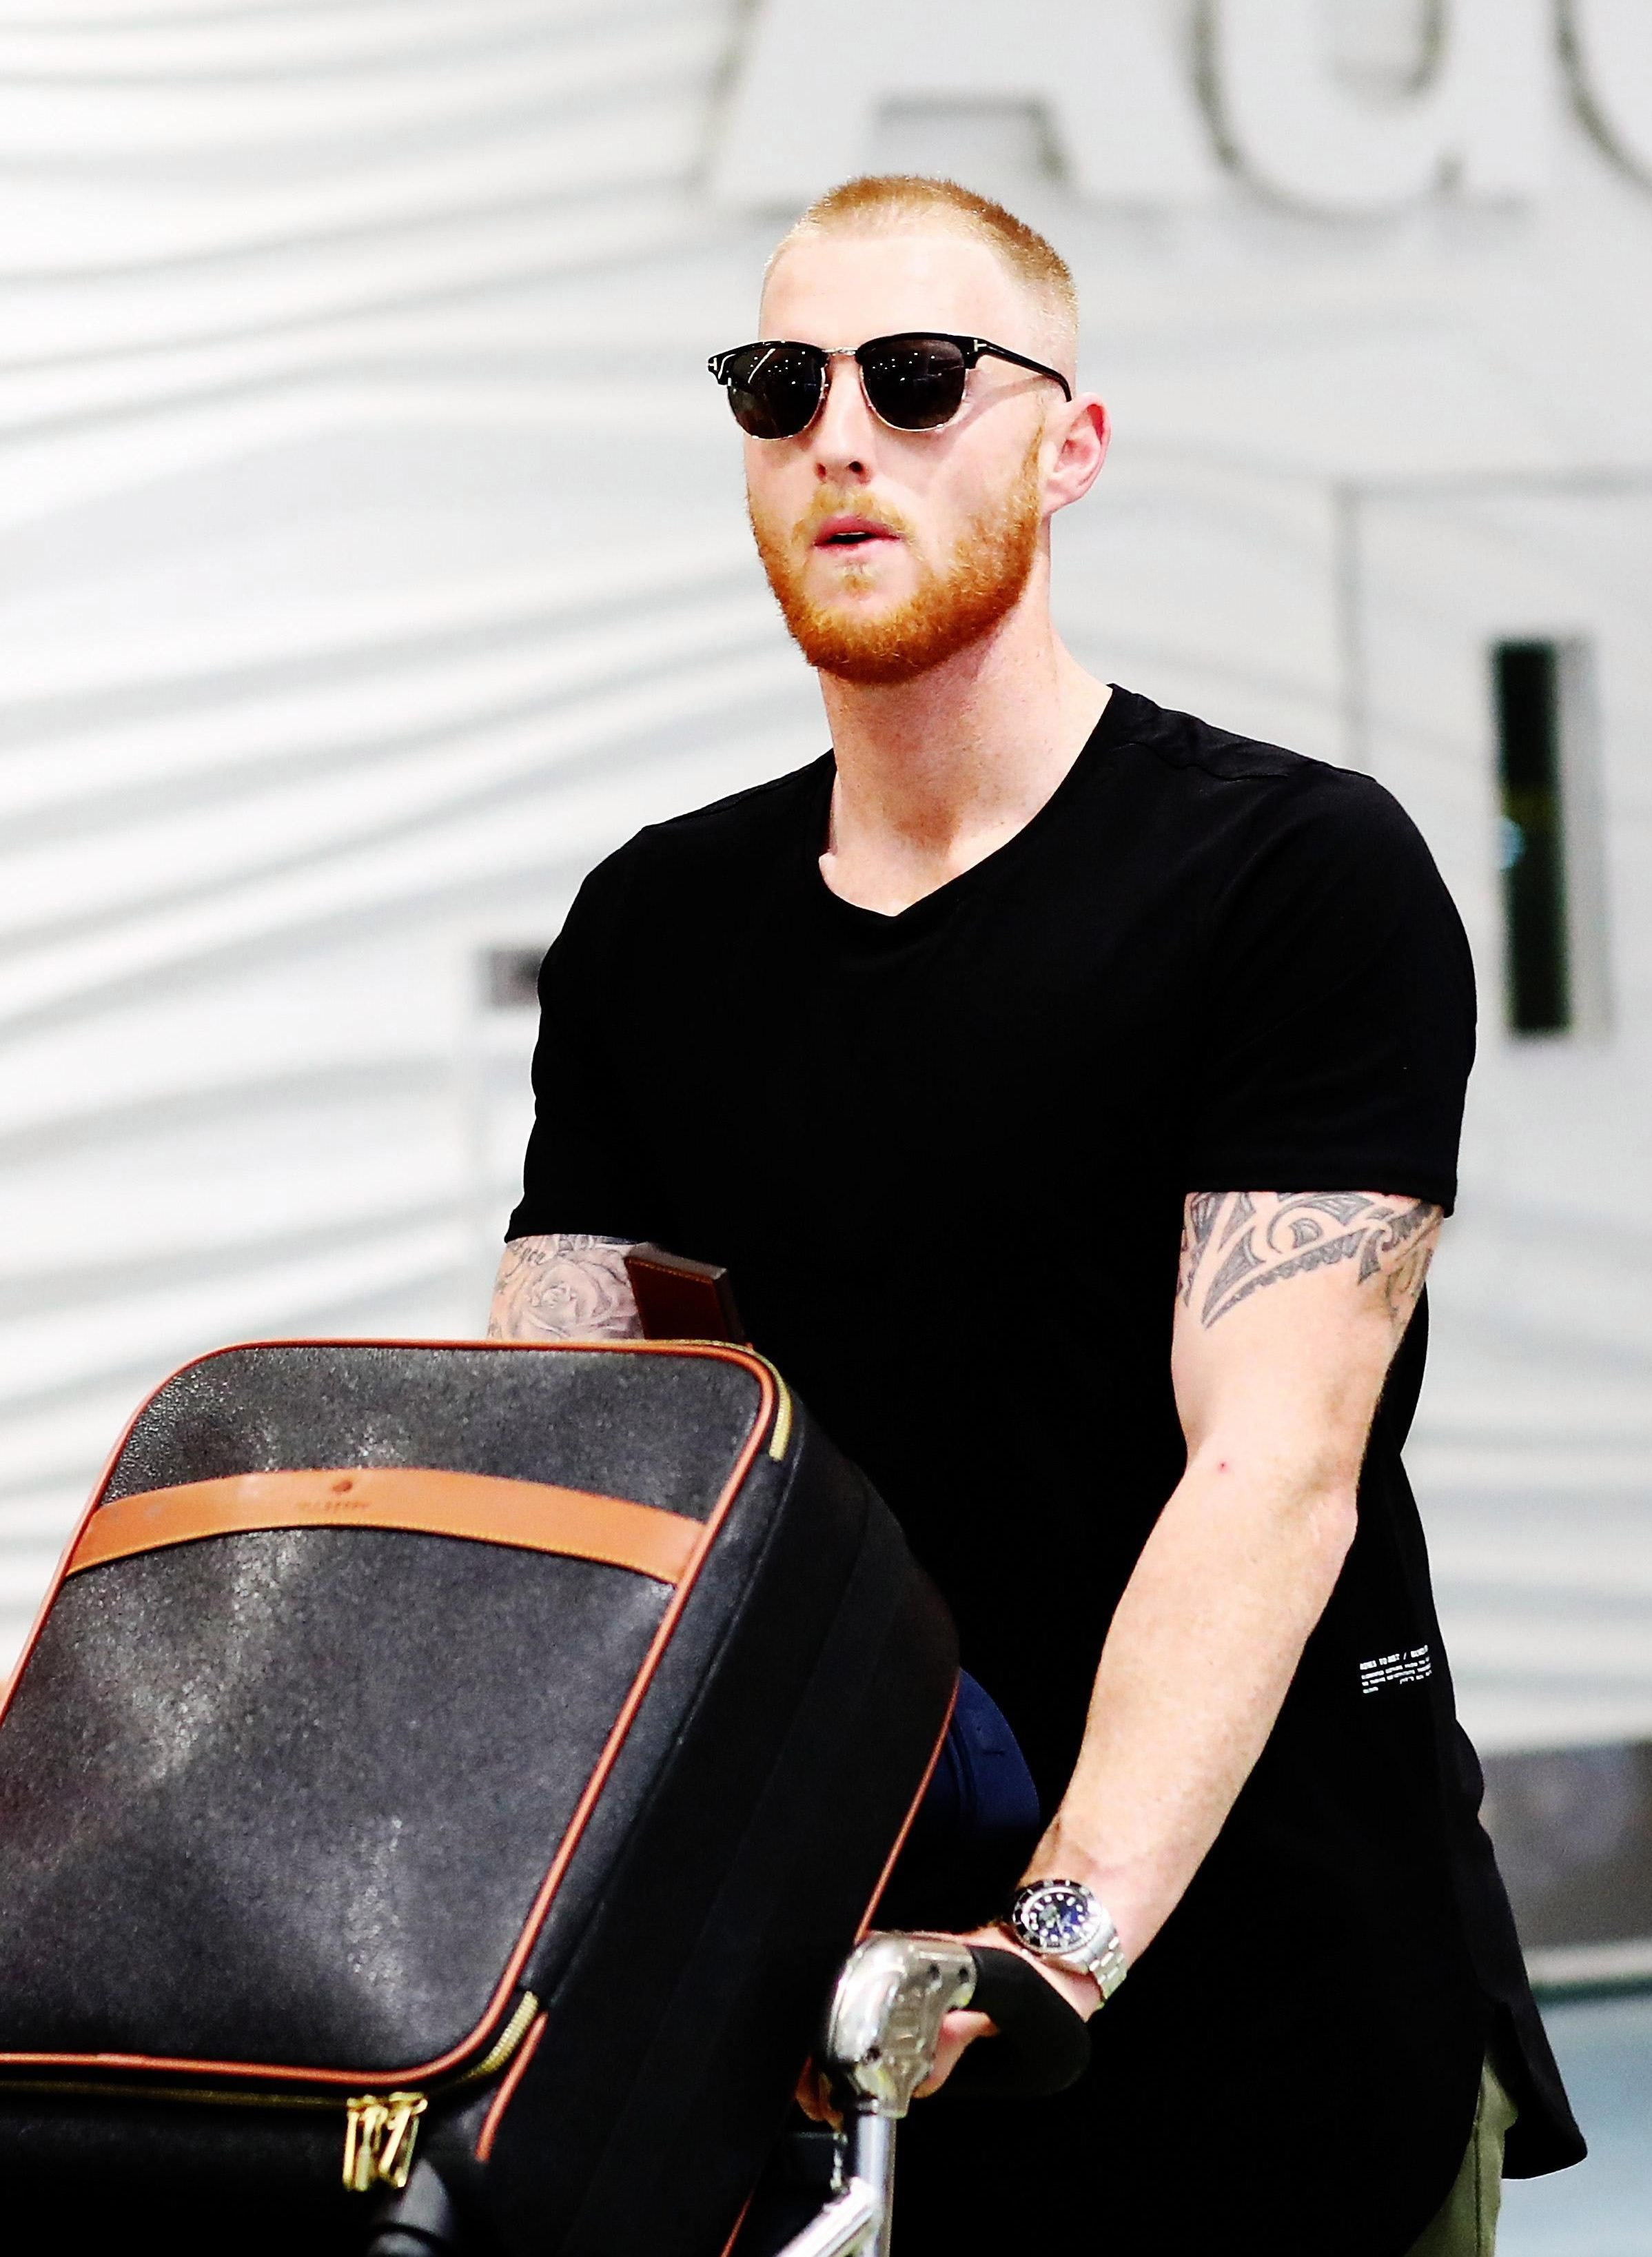 Ben Stokes arrived in New Zealand on Friday morning